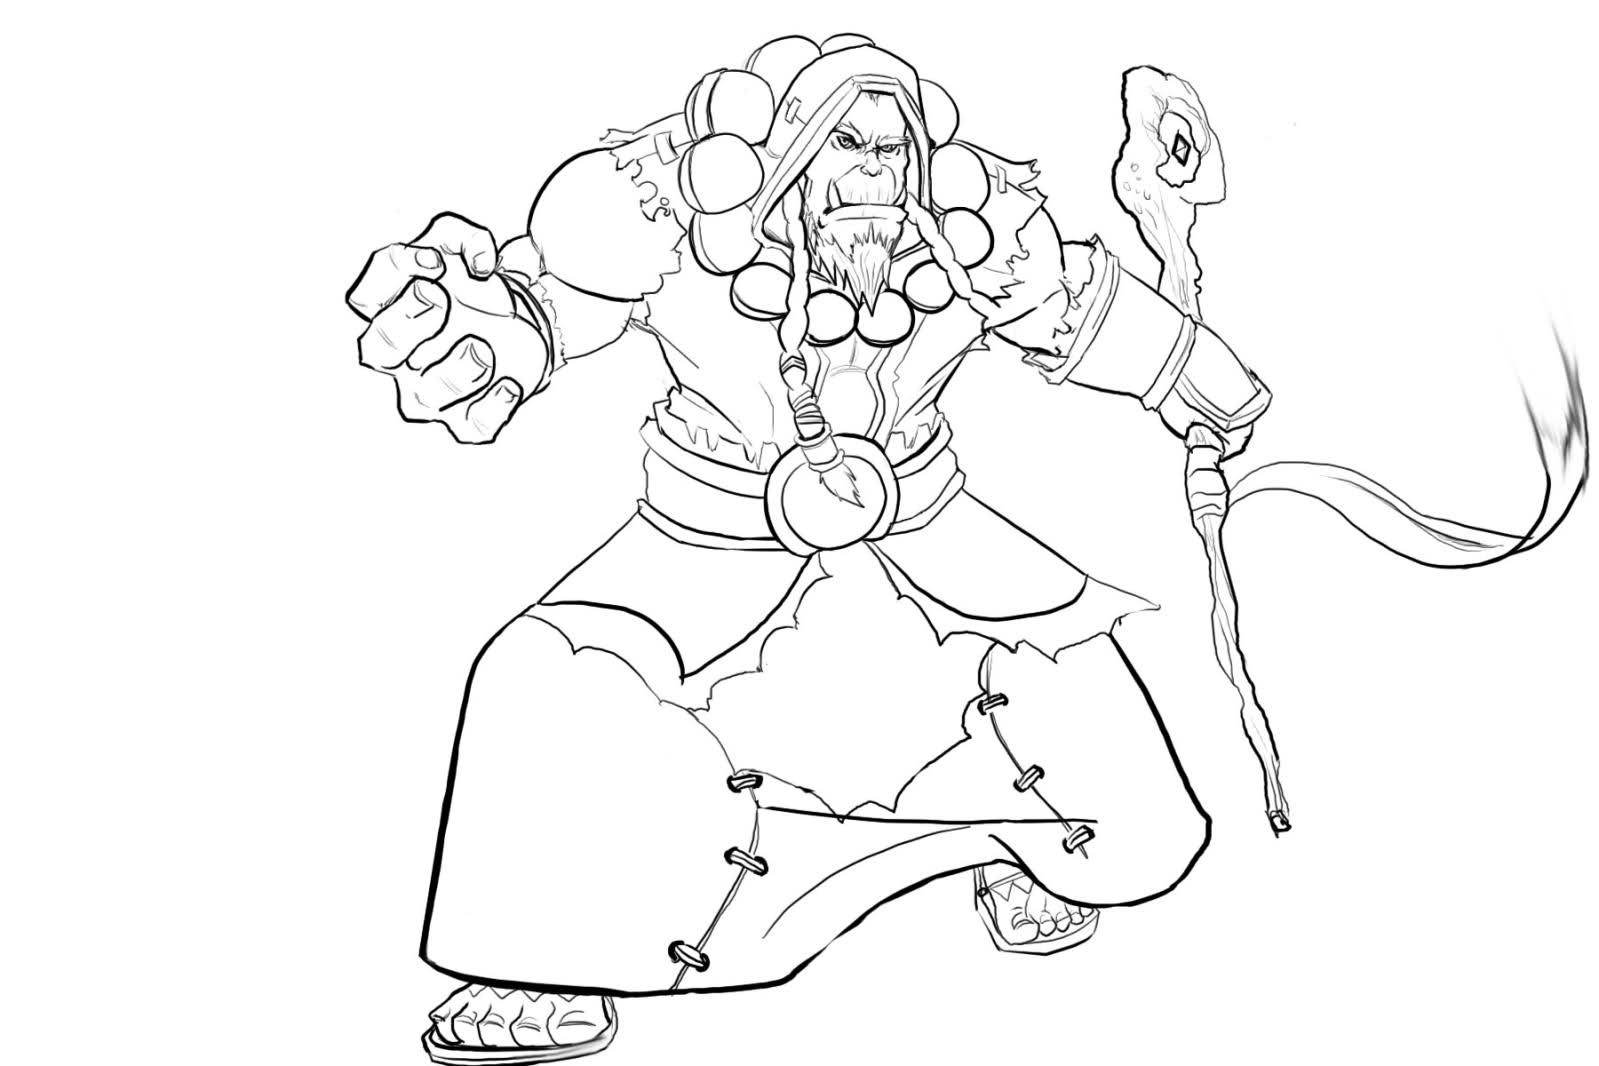 1599x1066 Awesome World Of Warcraft Coloring Pages Collection Free